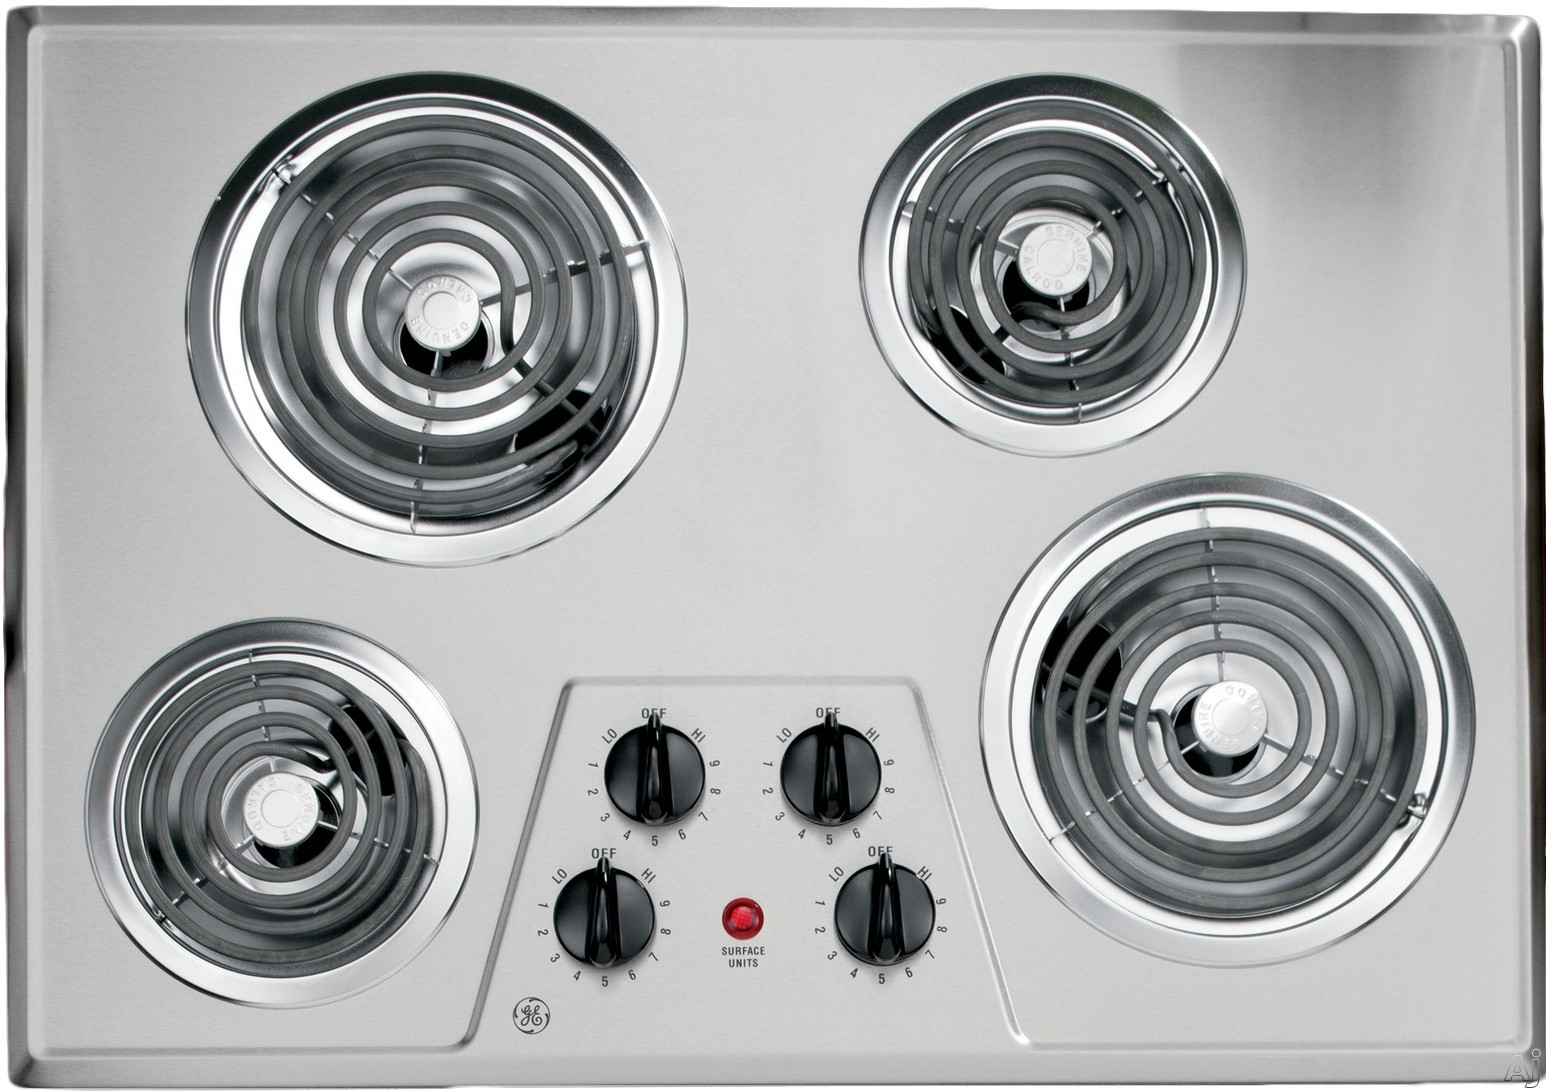 GE JP328 30 Inch Electric Cooktop with 4 Coil Elements, Removable Drip Bowls, Upfront Controls, GE Fits! Guarantee and ADA Compliant